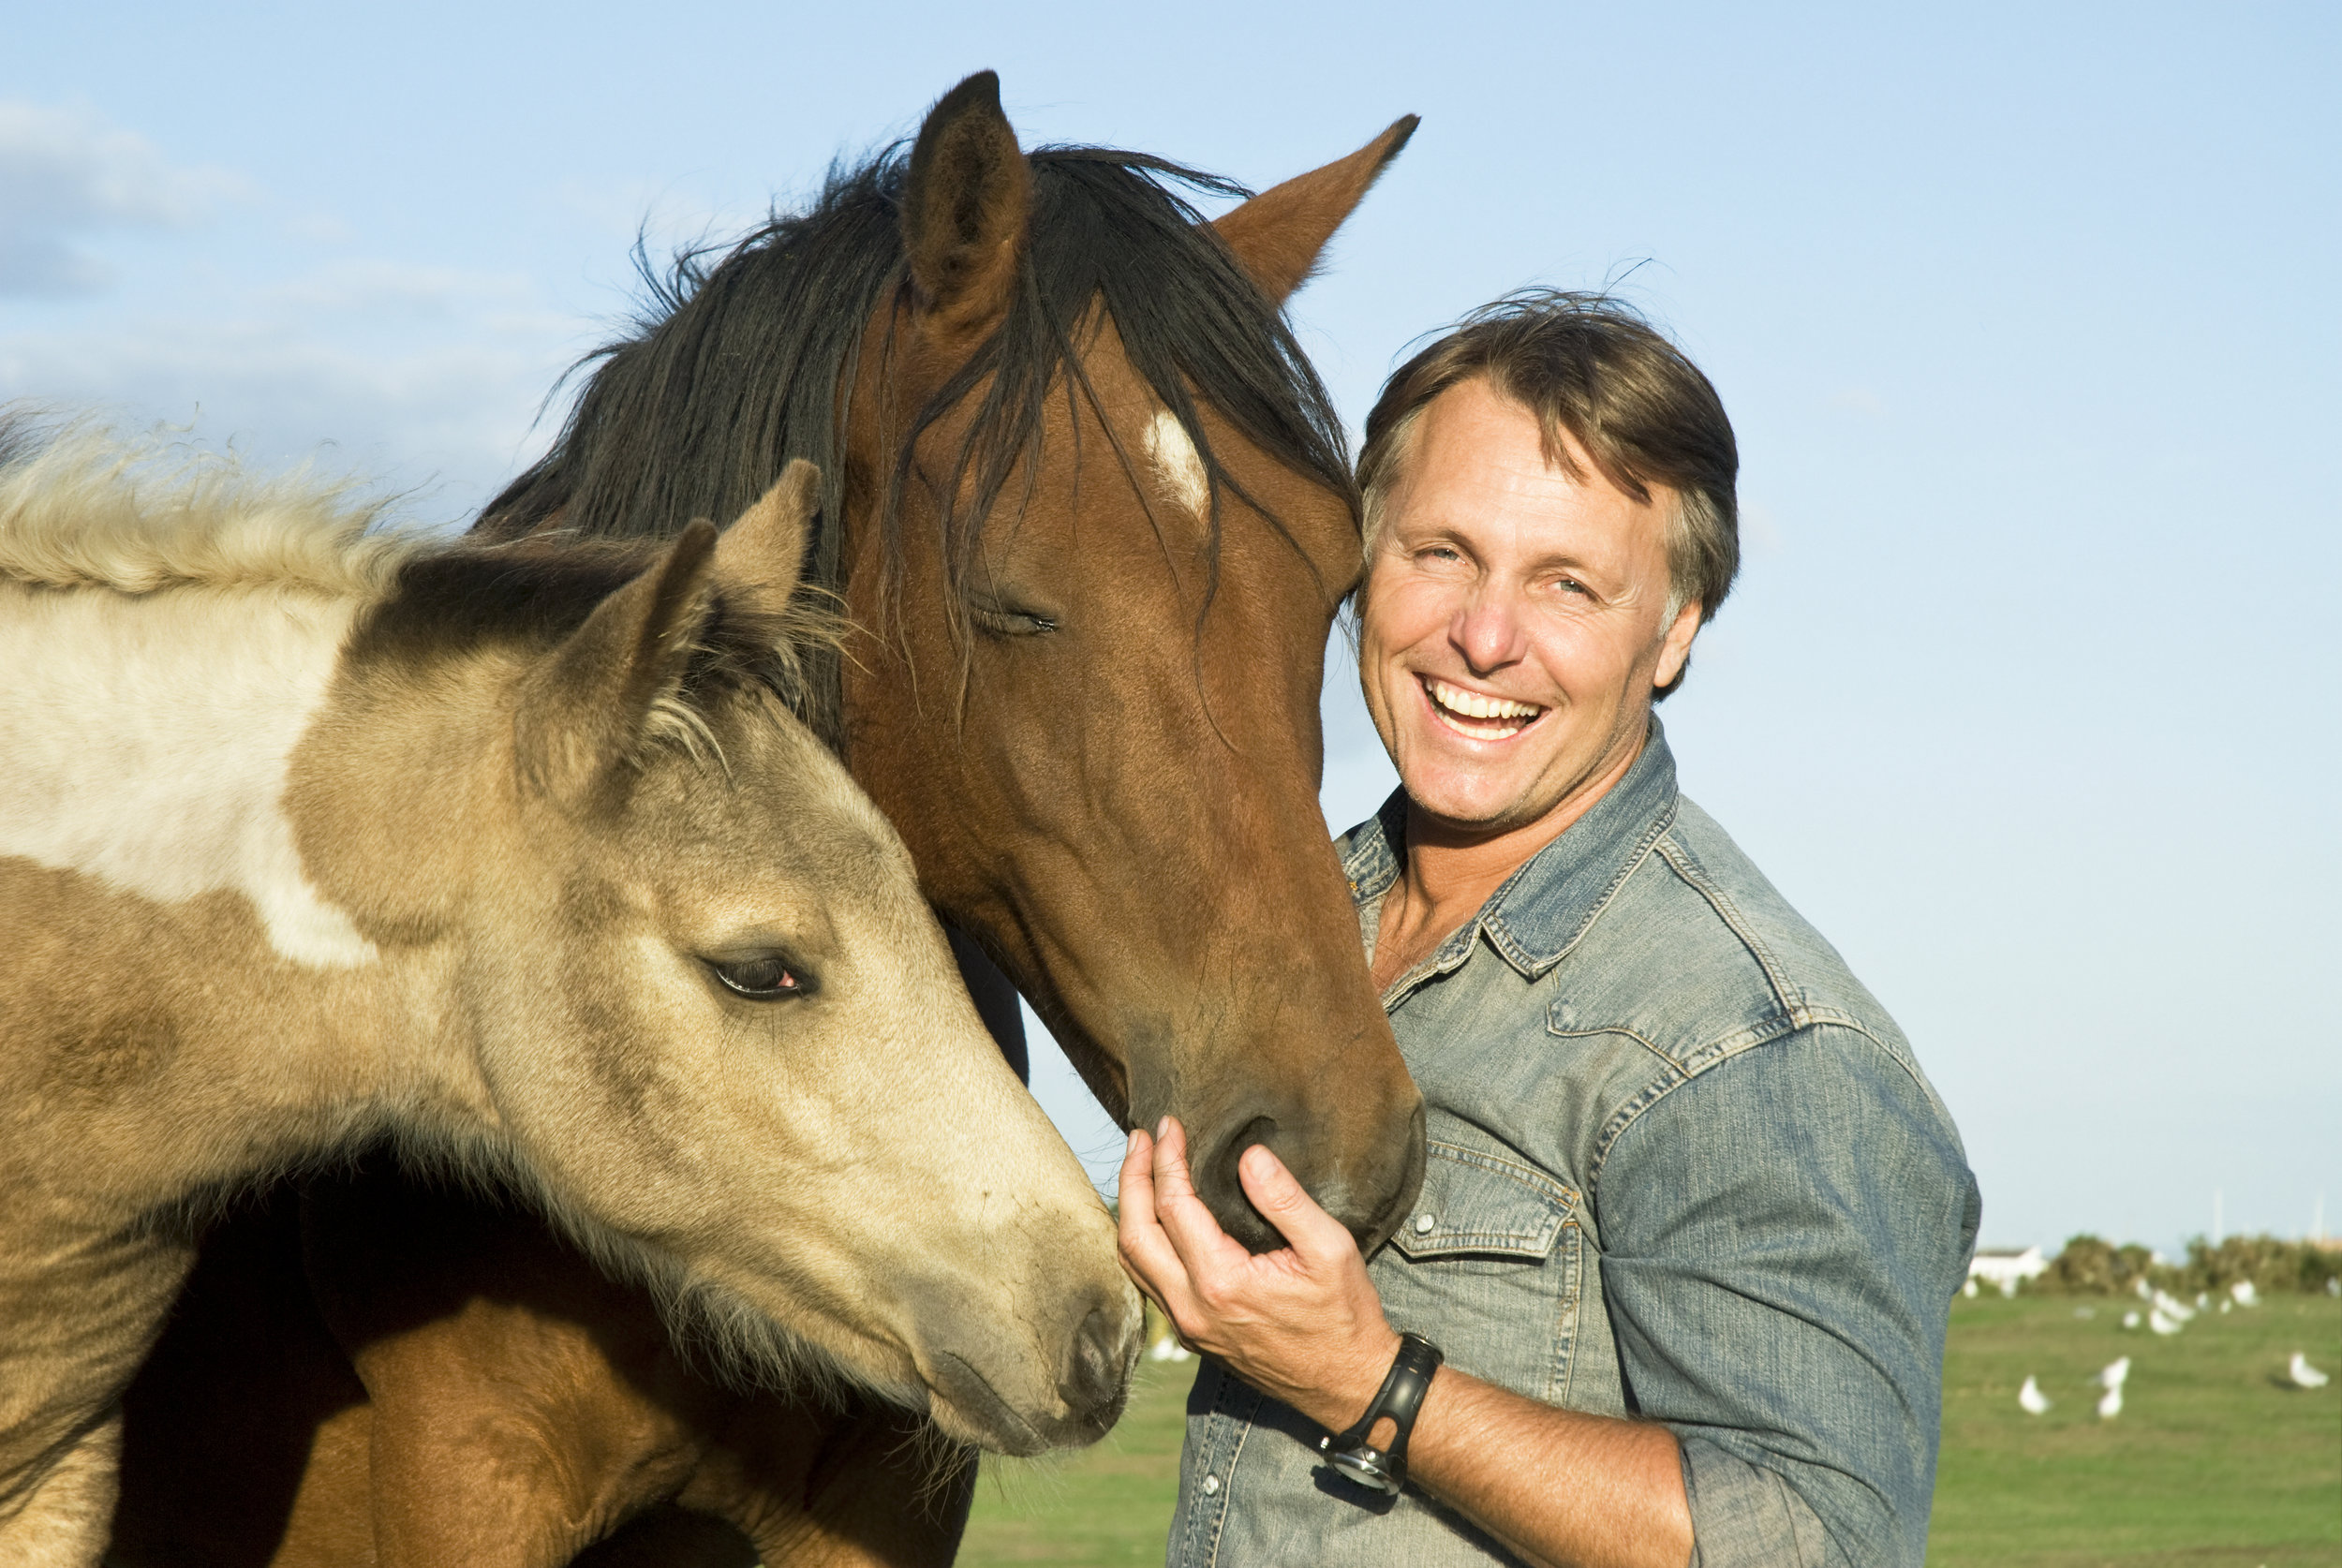 Equine Assisted Psychotherapy - Children, Adults and Families